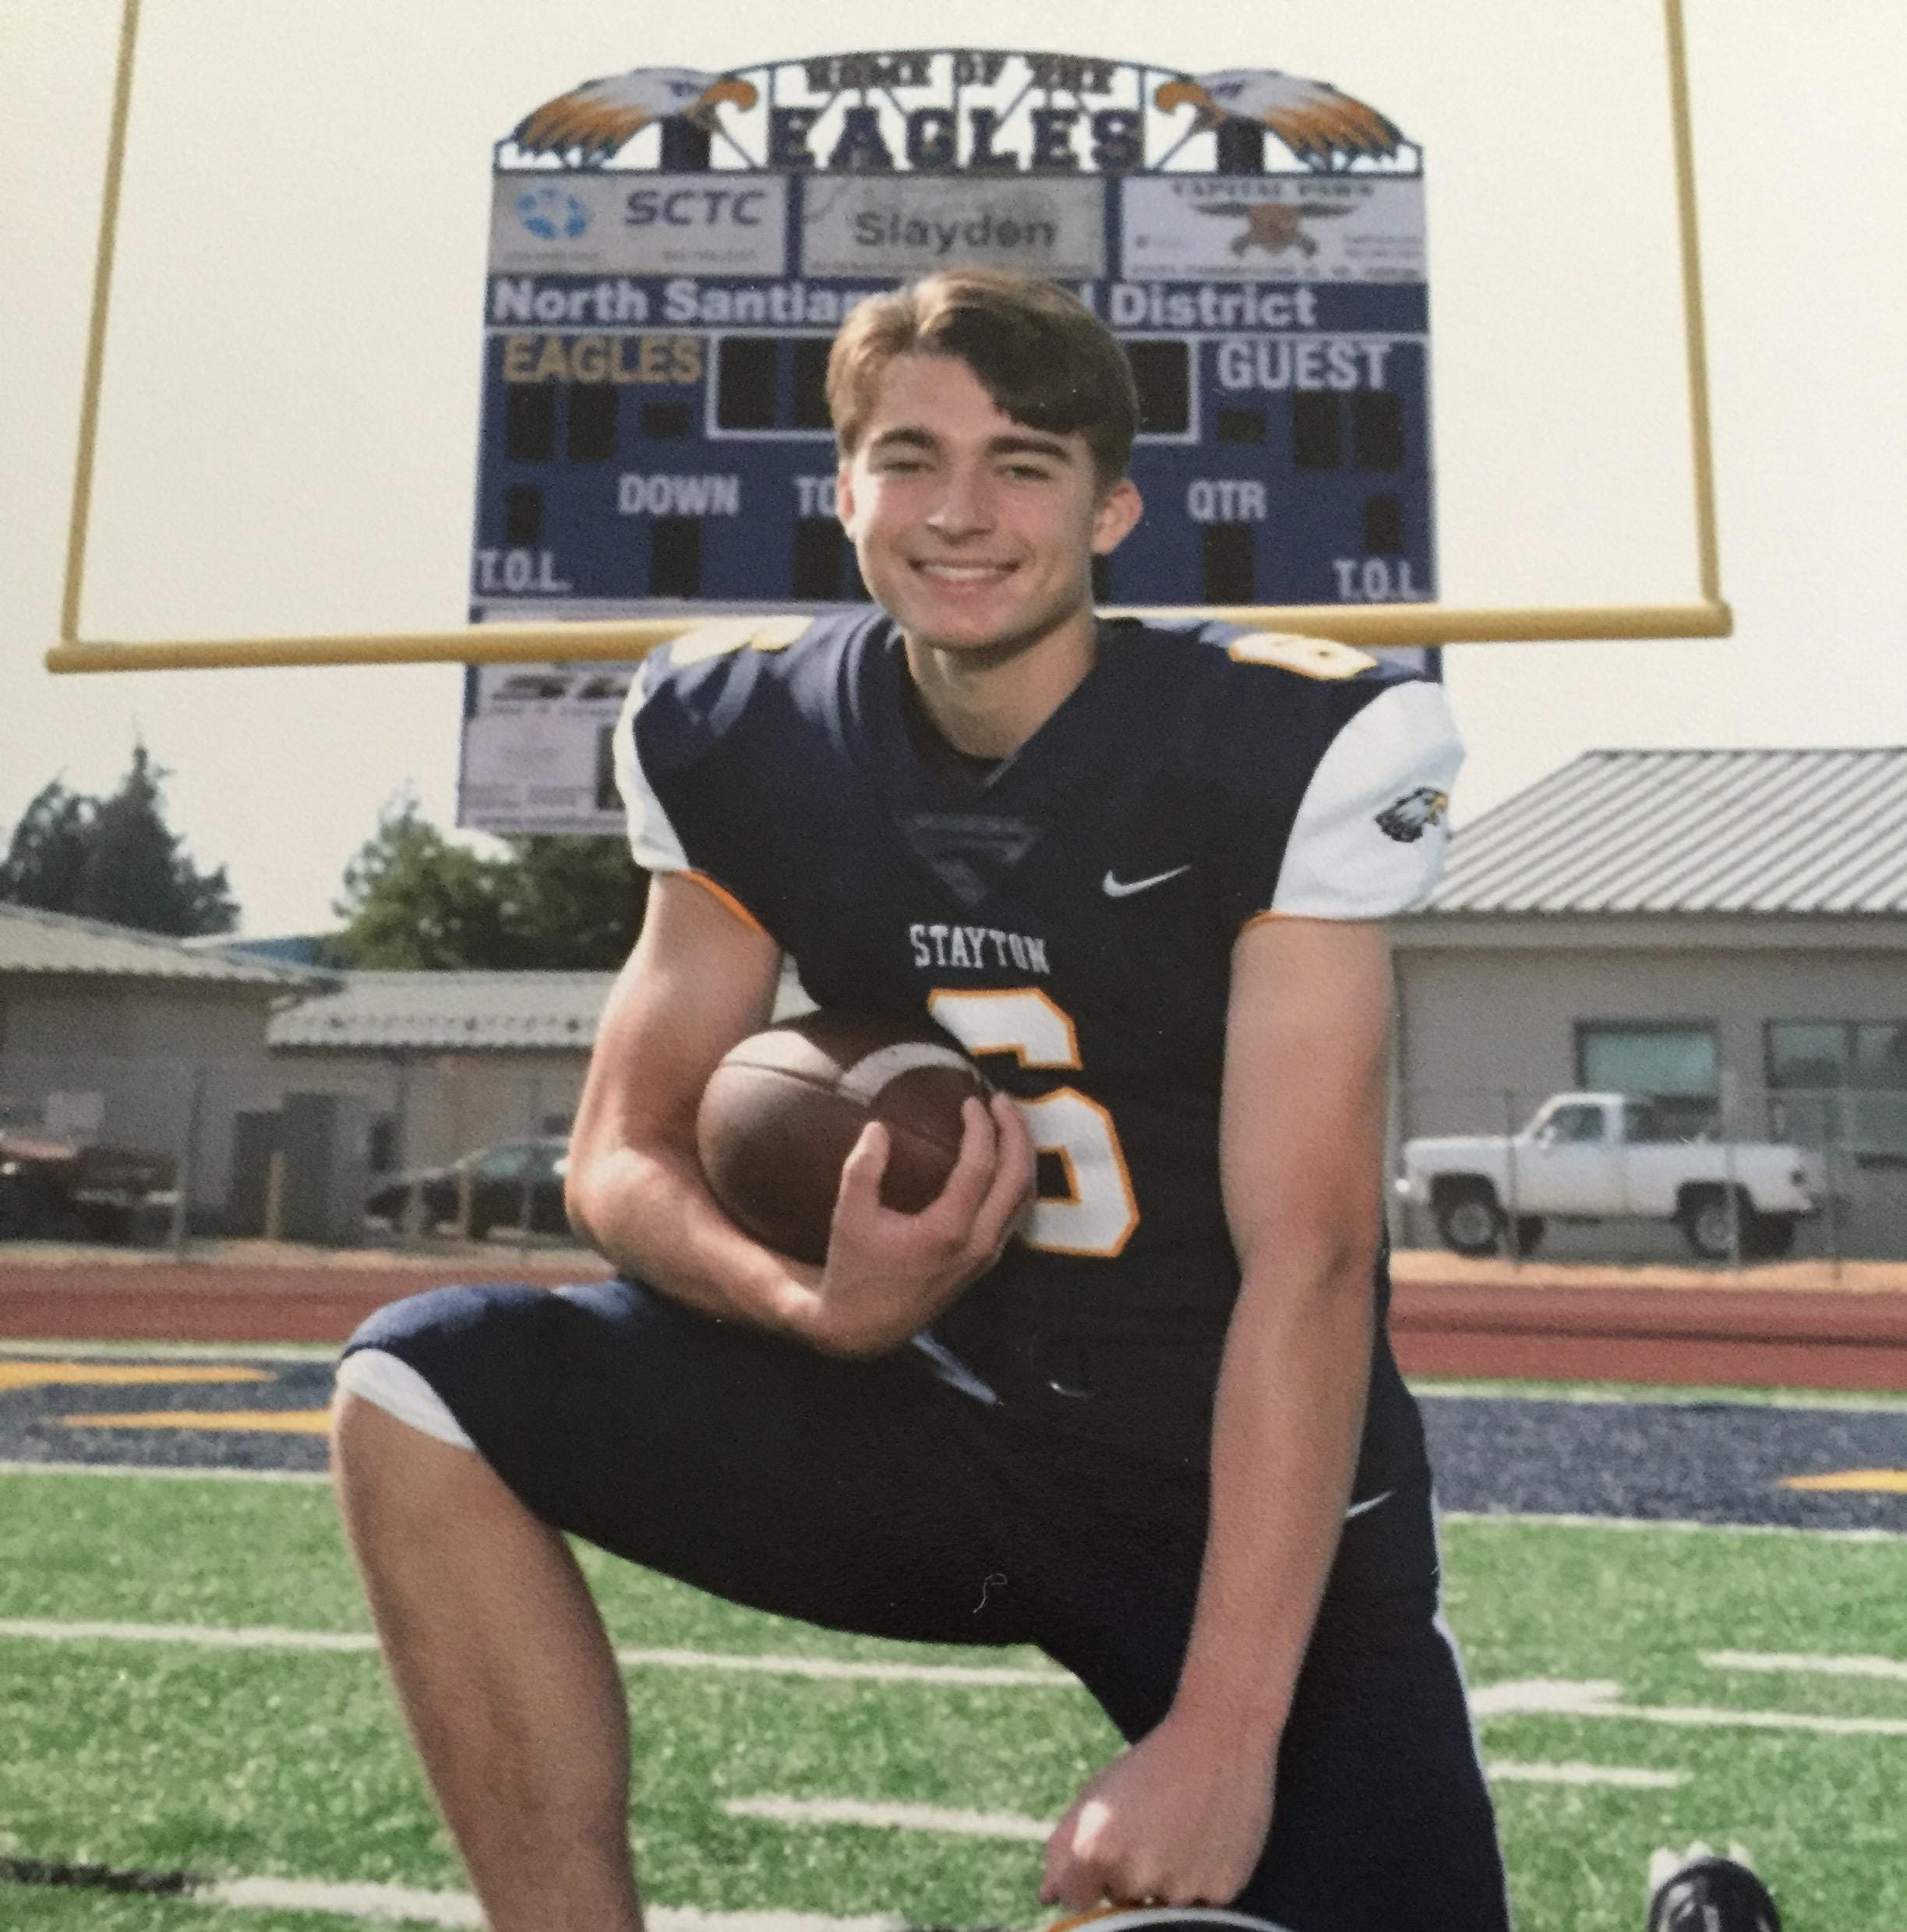 Stayton's Ben Rash named SJ Athlete of the Week in reader poll